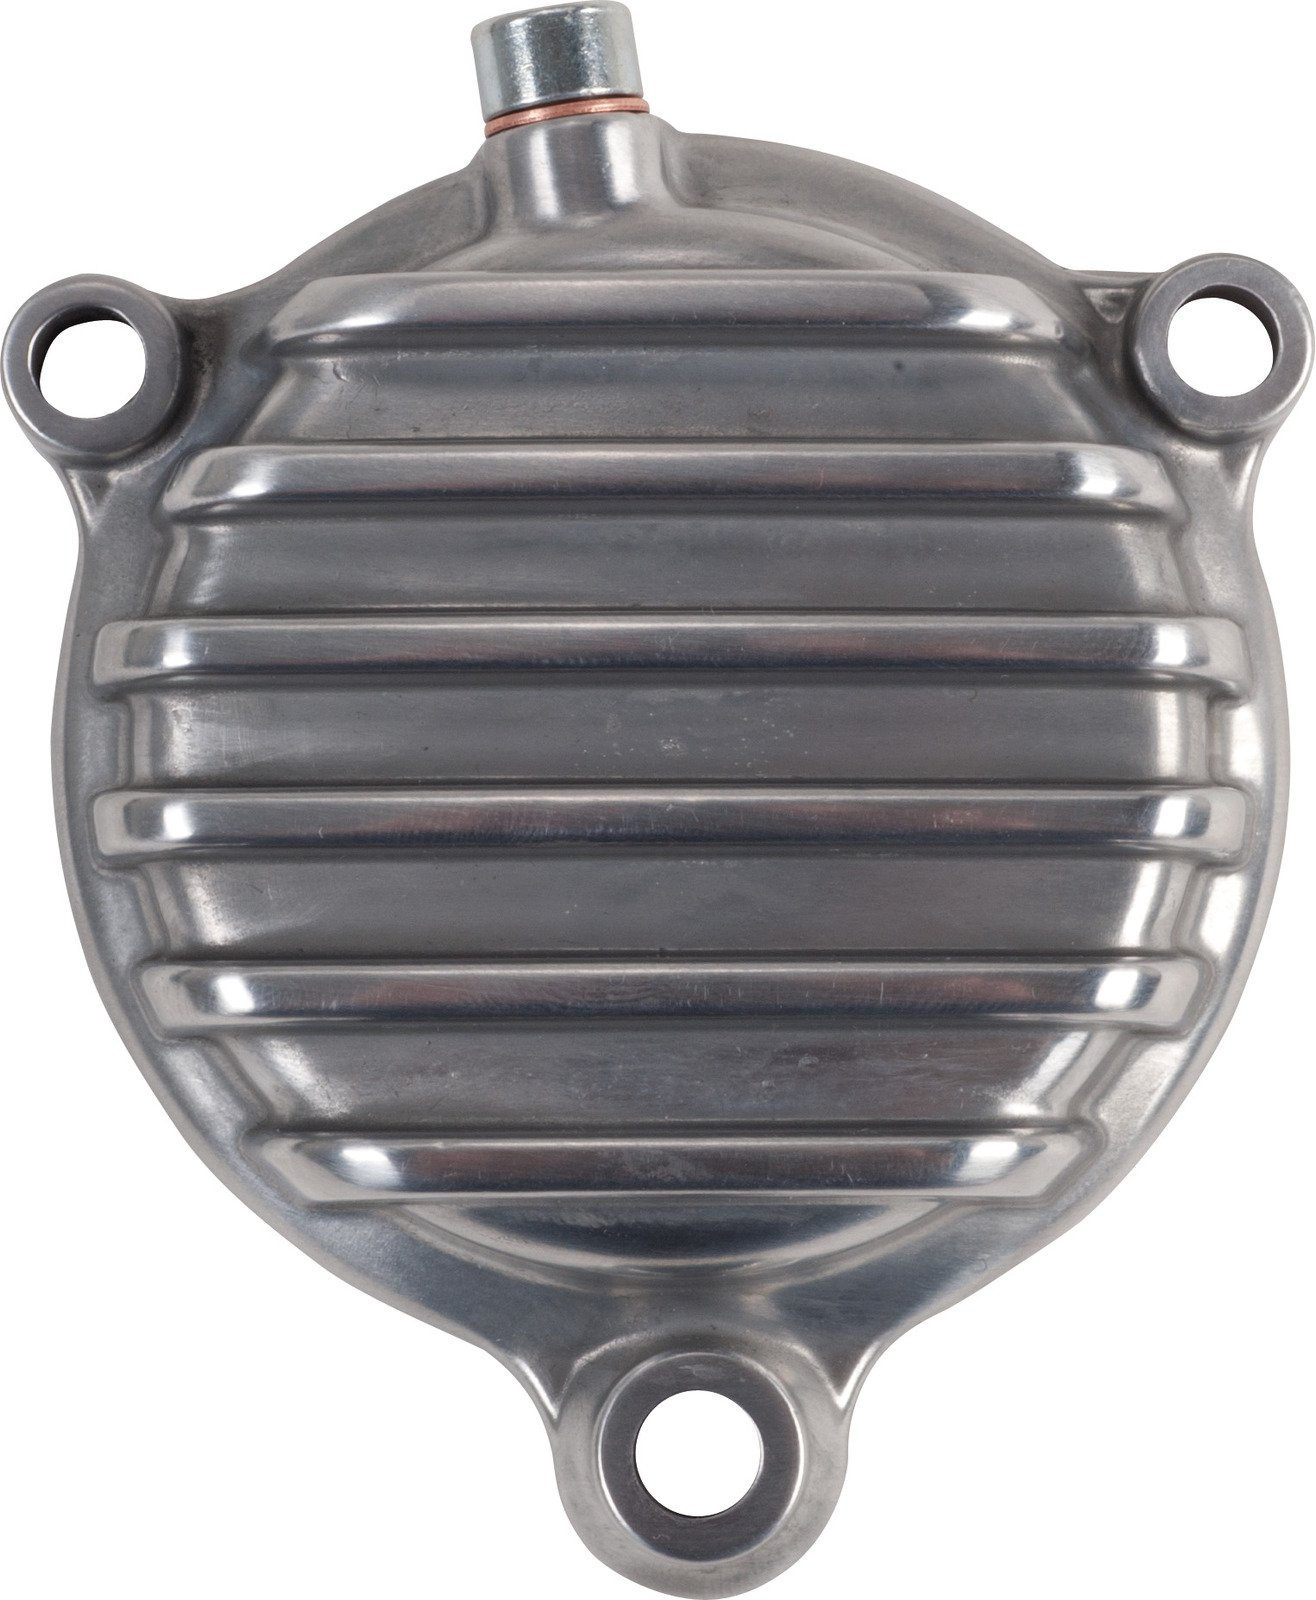 Yamaha SR400 SR500 TT500 XT500 Silver Vi-Race Oil Filter Cover with Cooling Fins, Aluminium polished 50273